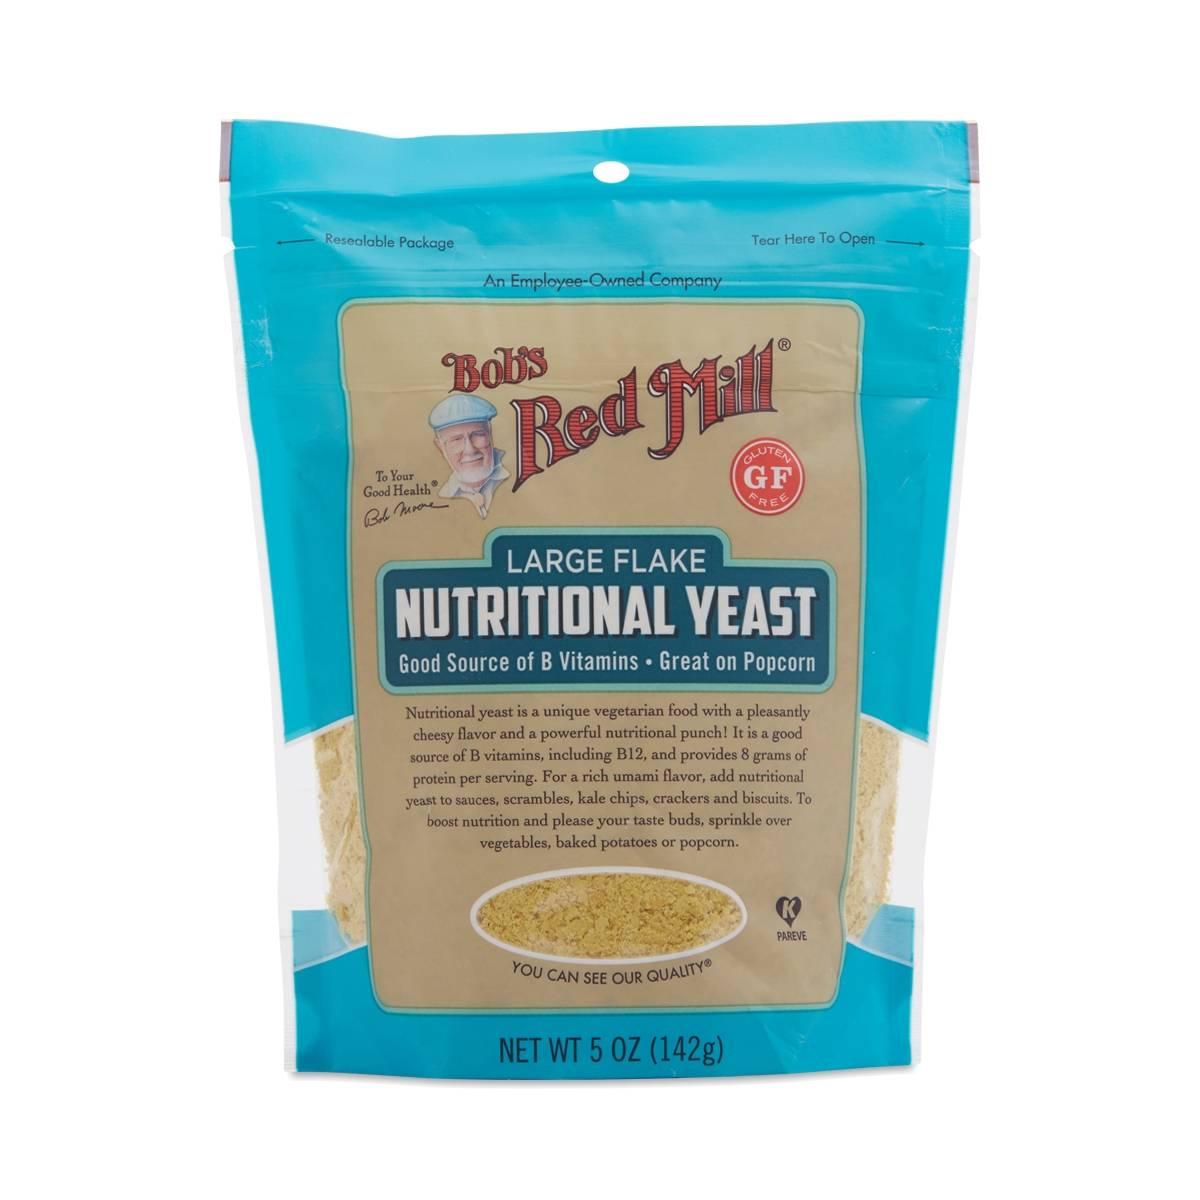 Large Flake Nutritional Yeast by Bob's Red Mill - Thrive Market